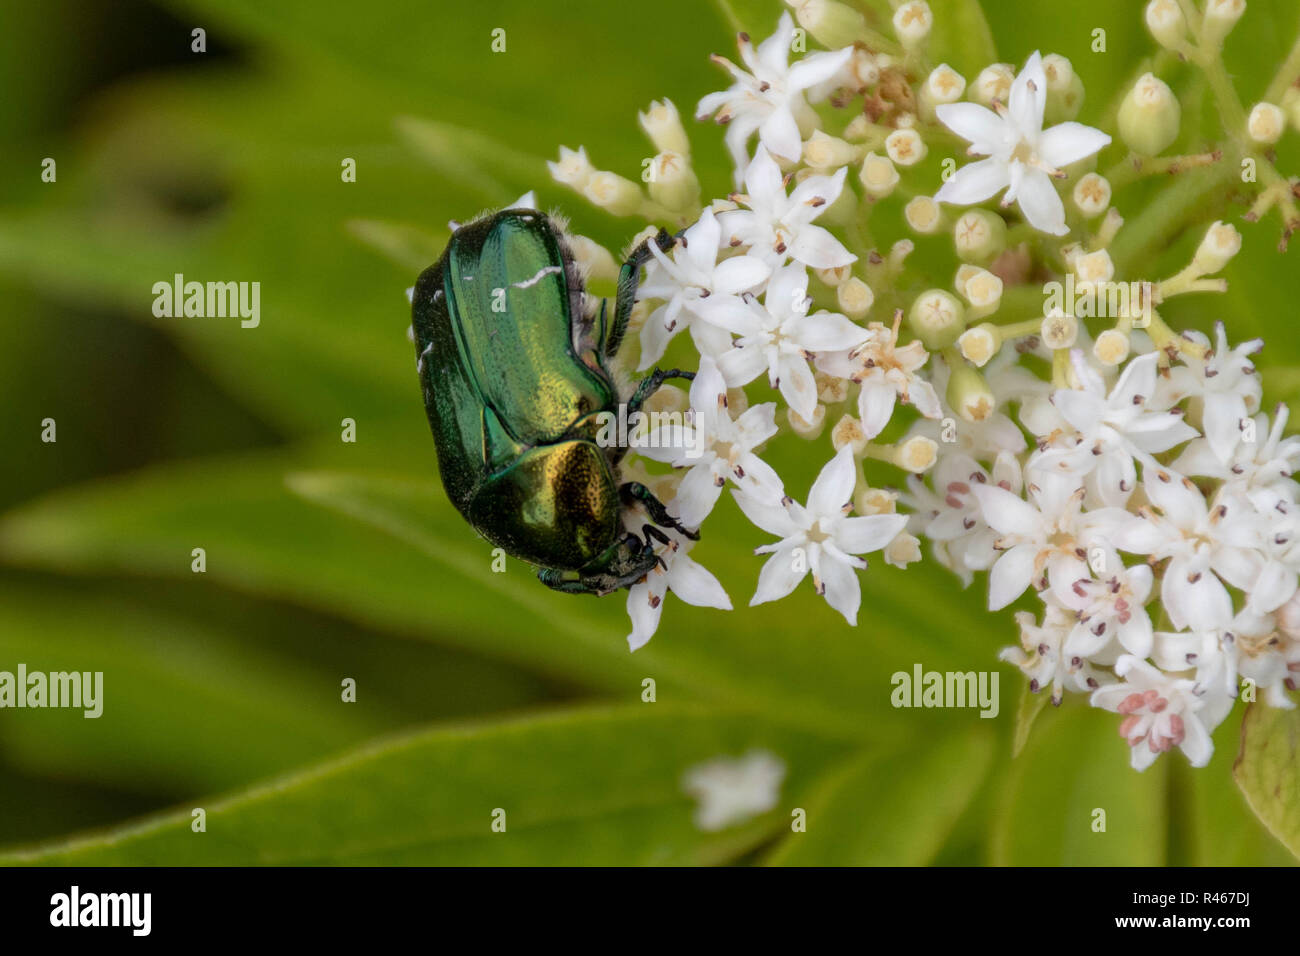 Closeup of a green metallic beetle (European Rose Chafer, Cetonia aurata) crawling on small white flower blossoms Stock Photo